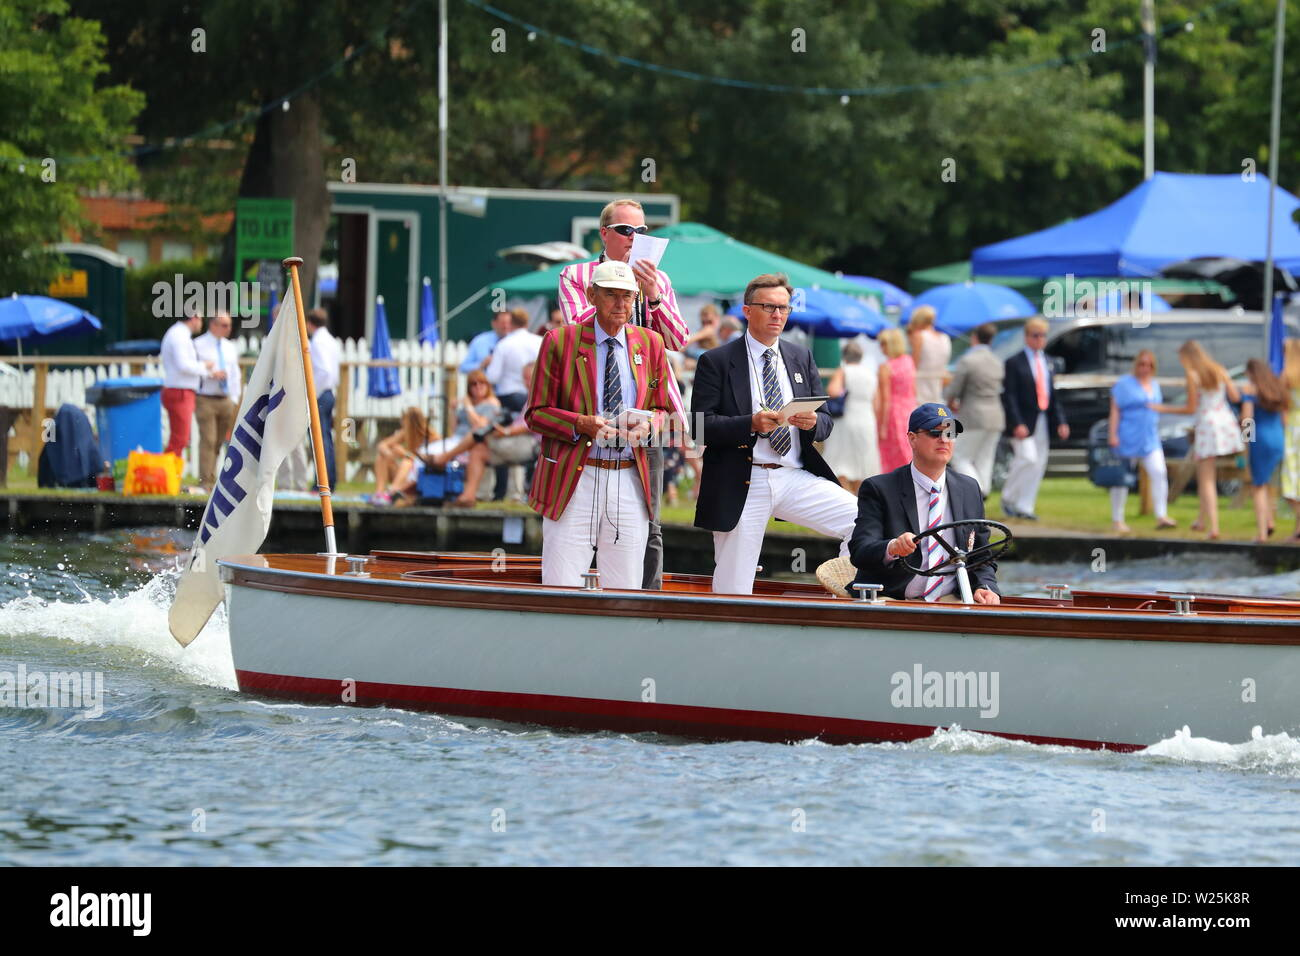 The Umpire boat follows the competitors at speed at Henley Royal Regatta, Henley-on-Thames, UK Stock Photo